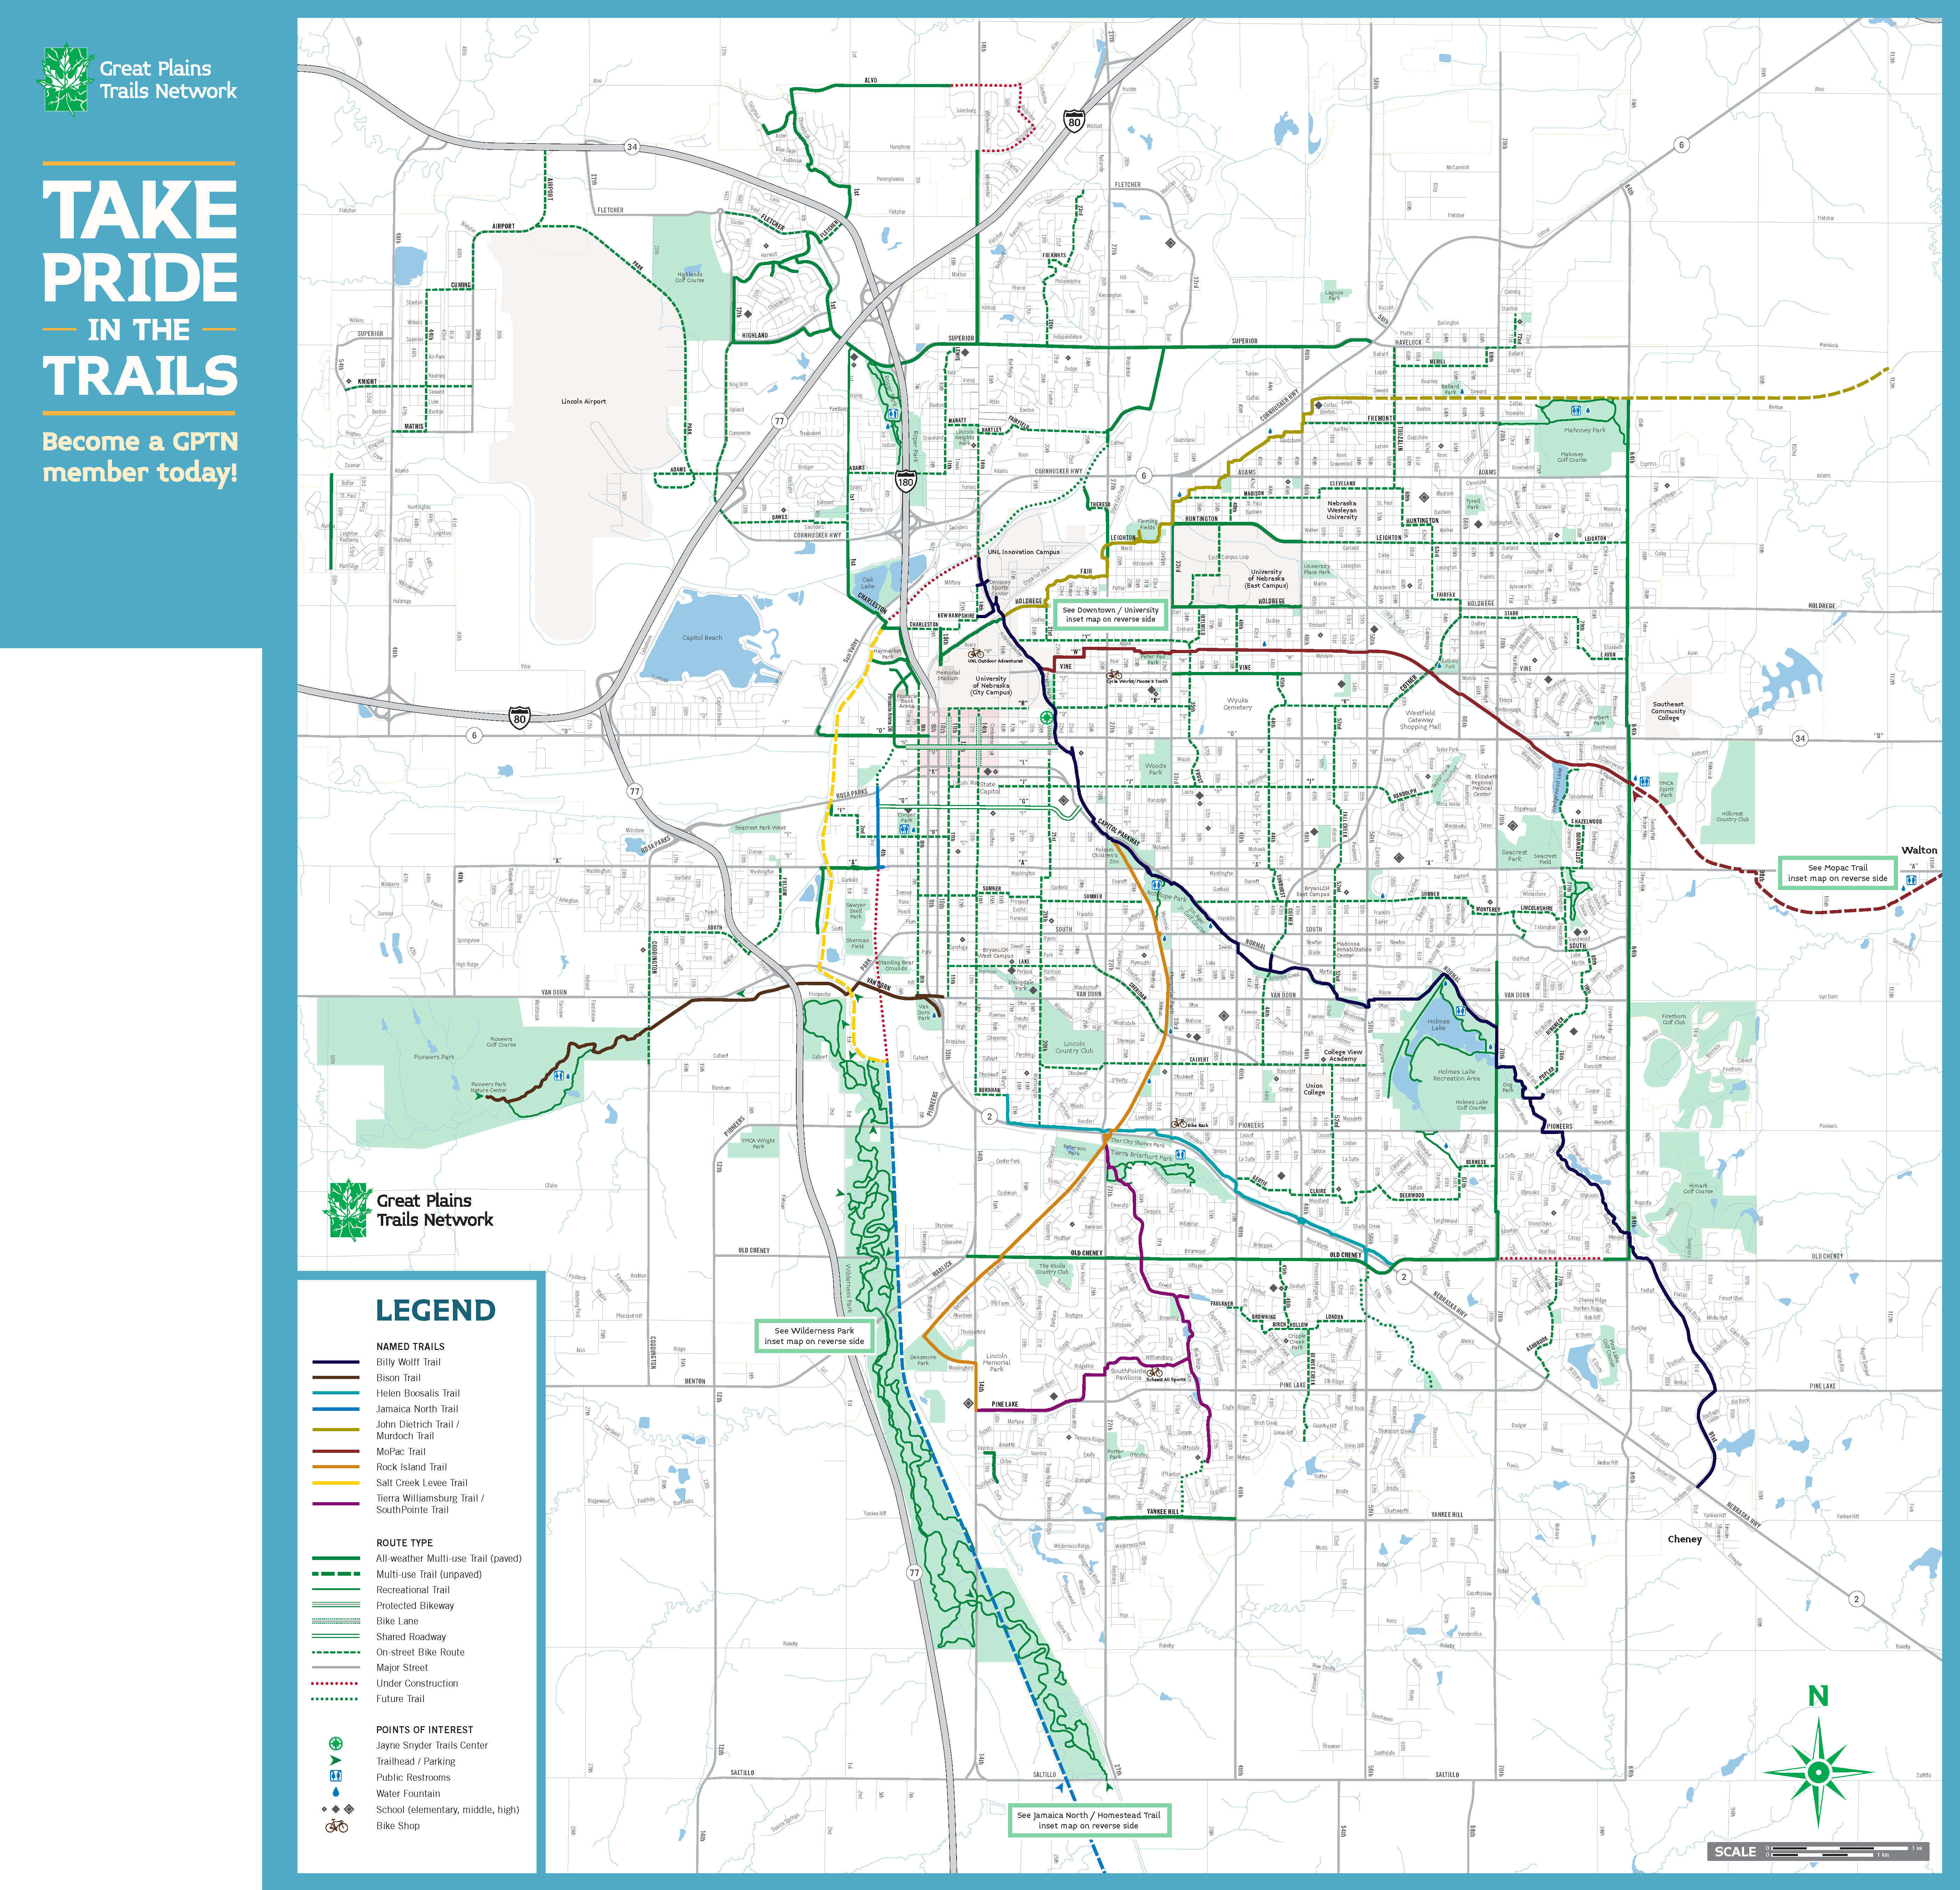 Great Plains Trail Network : Trails : Overview